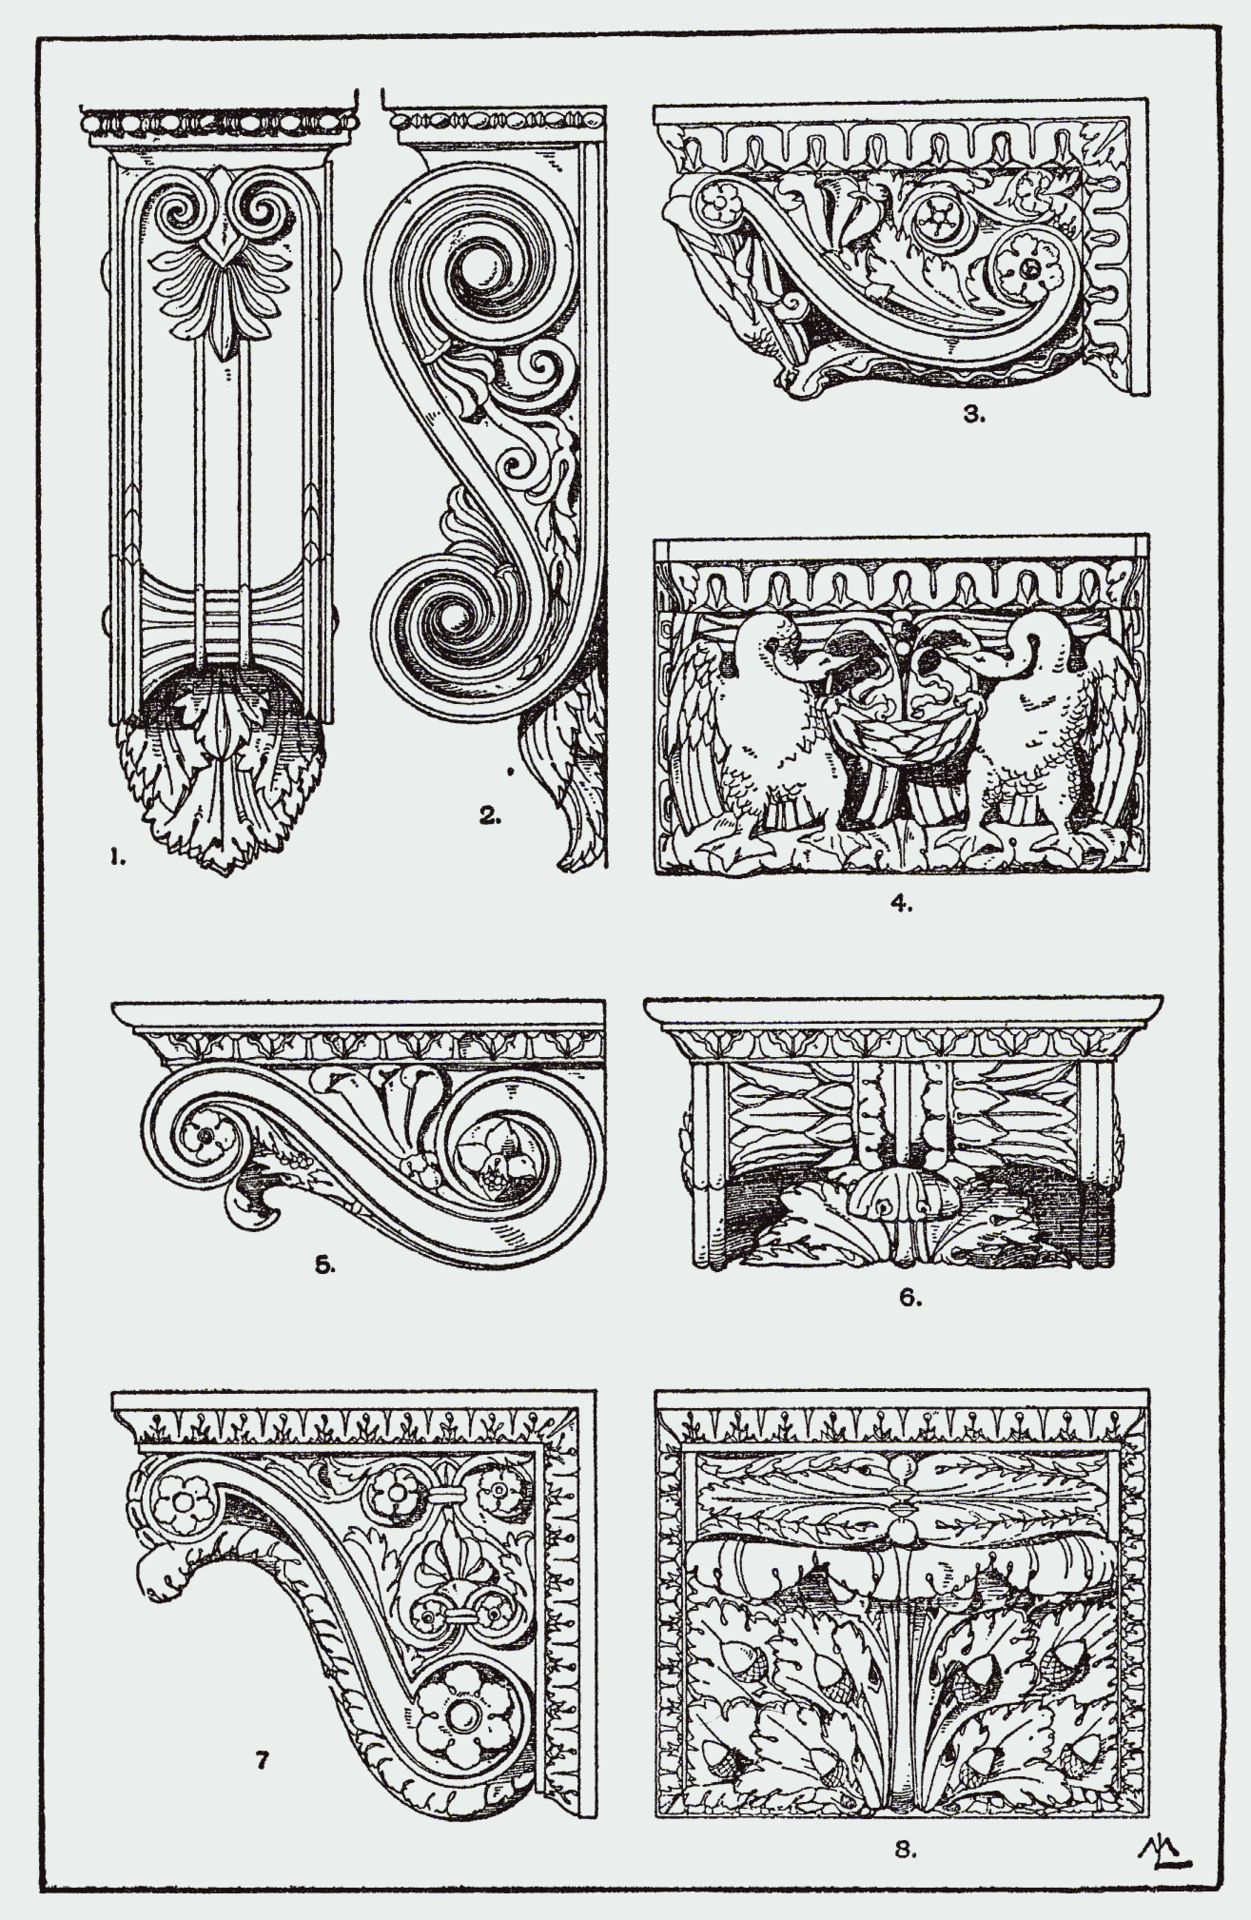 Category Meyer S Ornament Wikimedia Commons Ornament Drawing Architecture Drawing Architecture Sketch